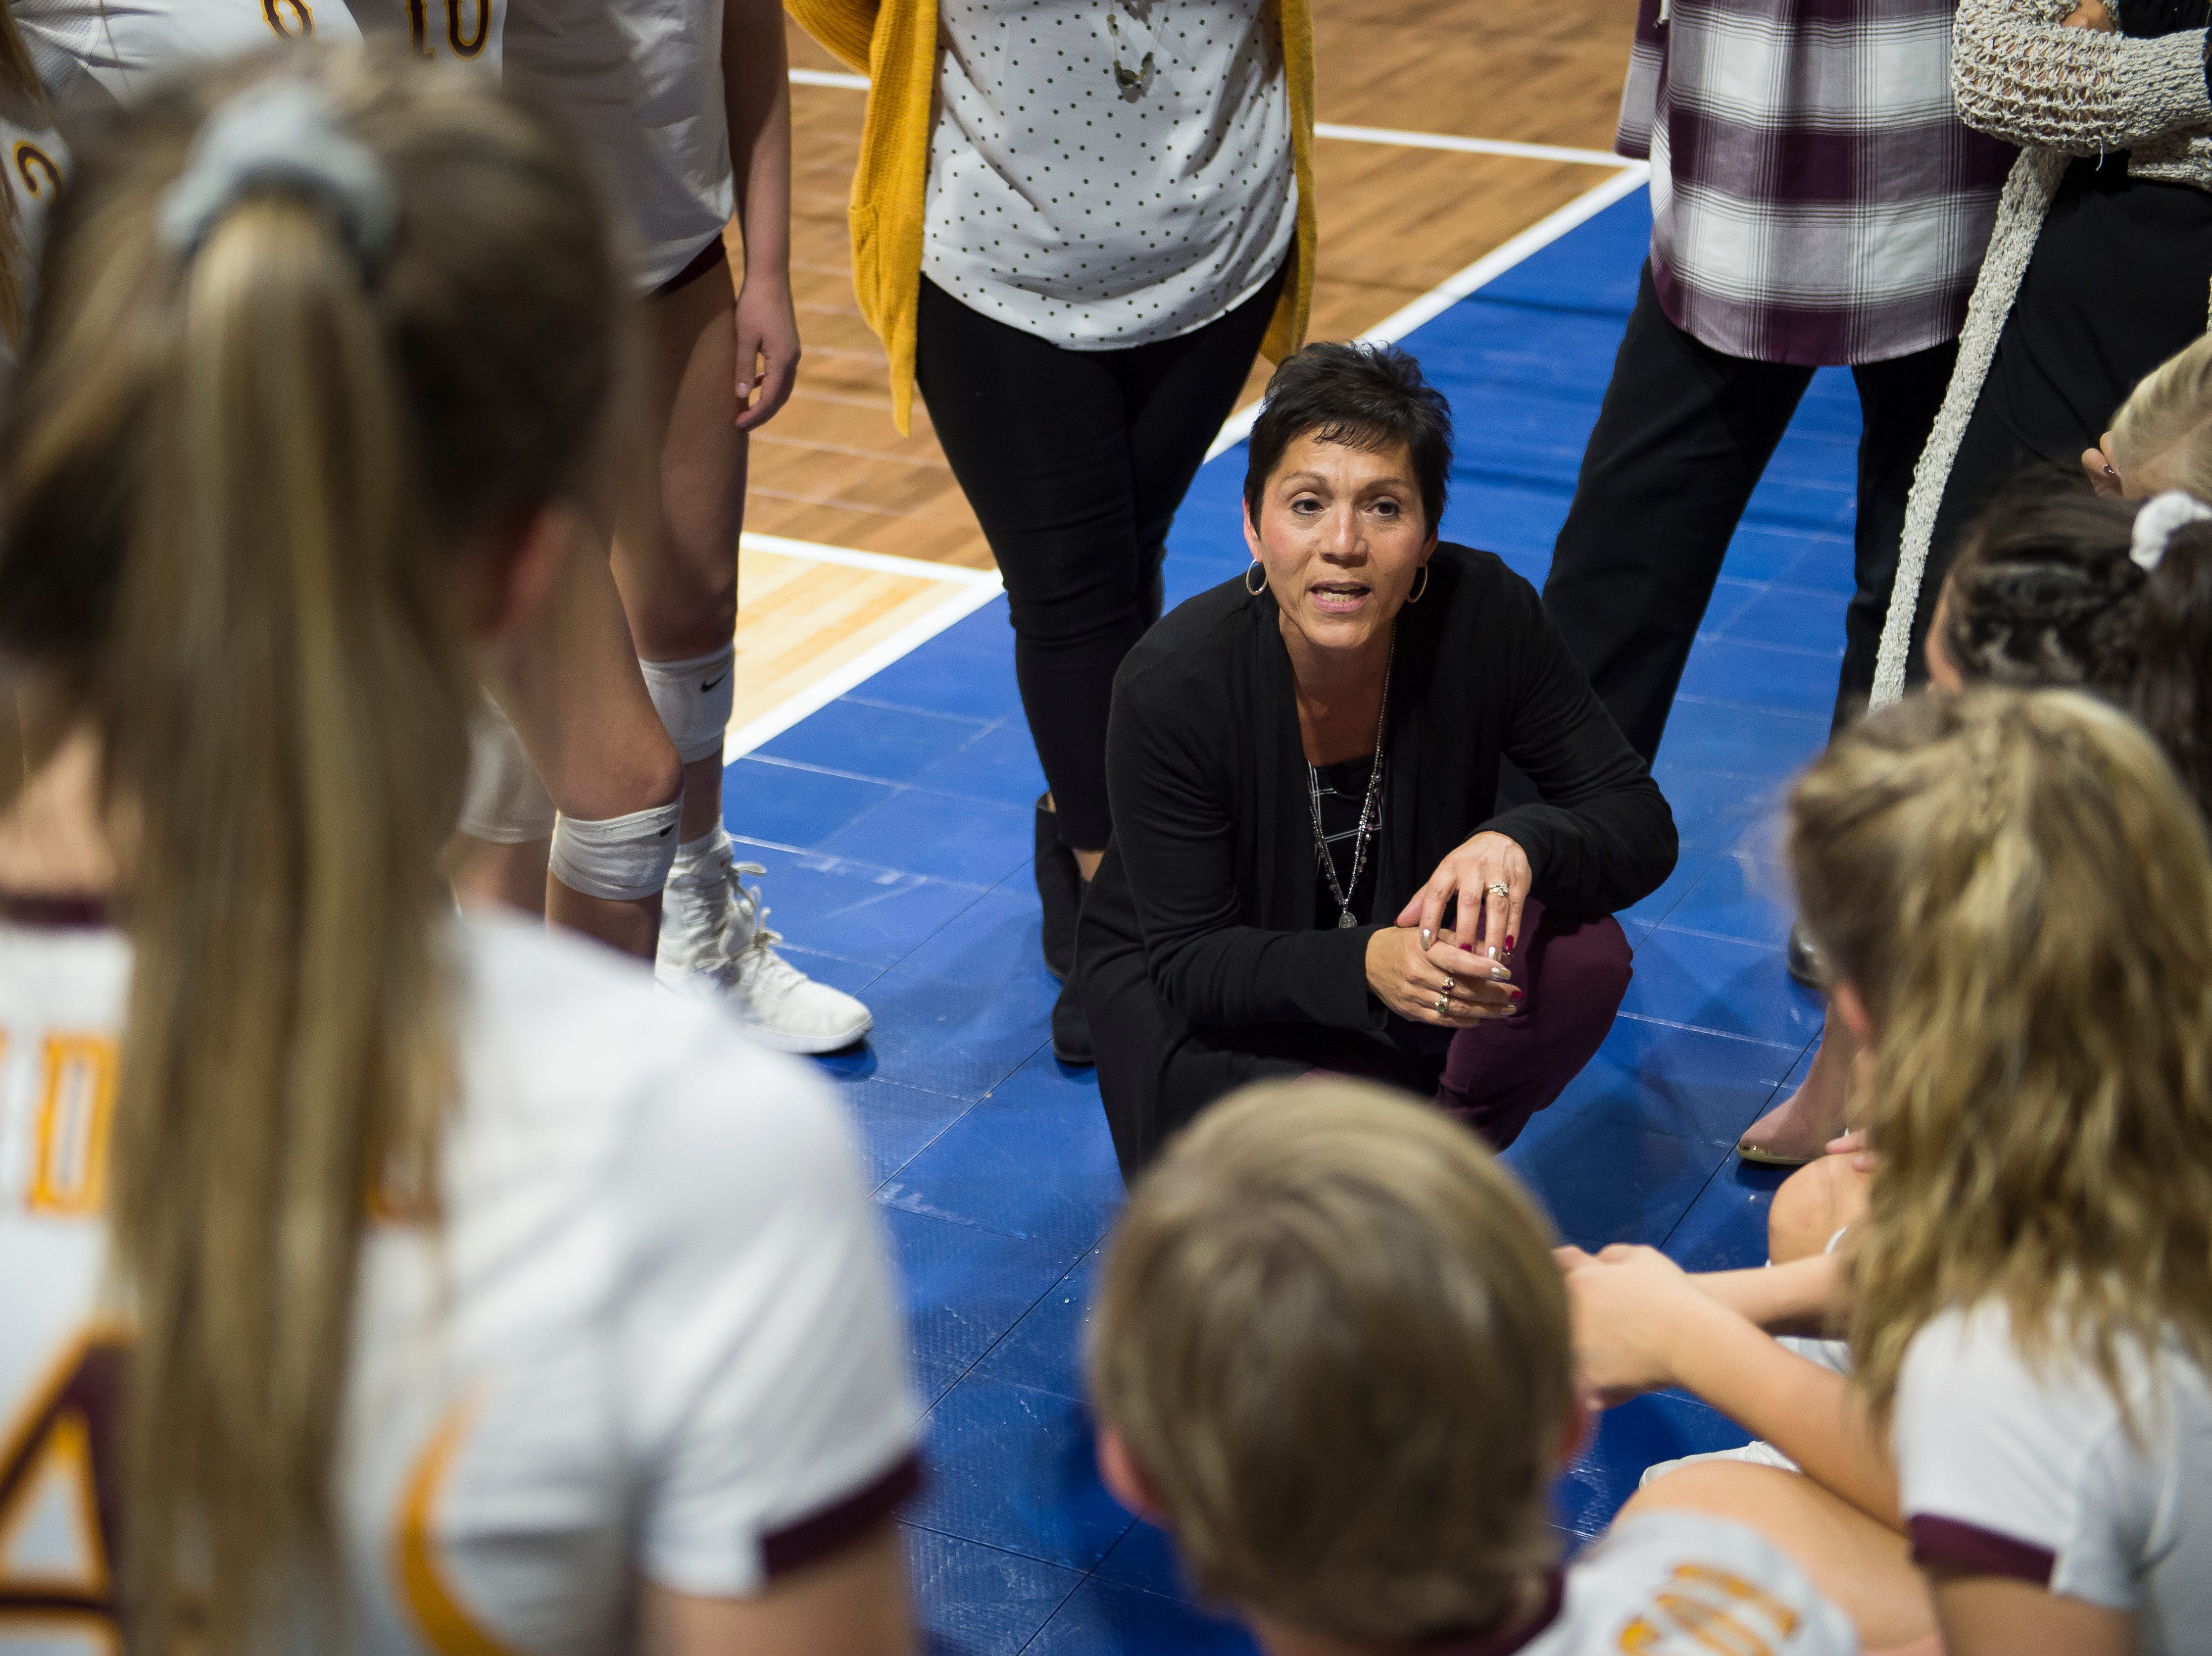 Windsor High School head coach LaVerne Huston talks with her team during a state first round game against Fossil Ridge High School on Thursday, Nov. 8, 2018, at the Denver Coliseum in Denver, Colo.